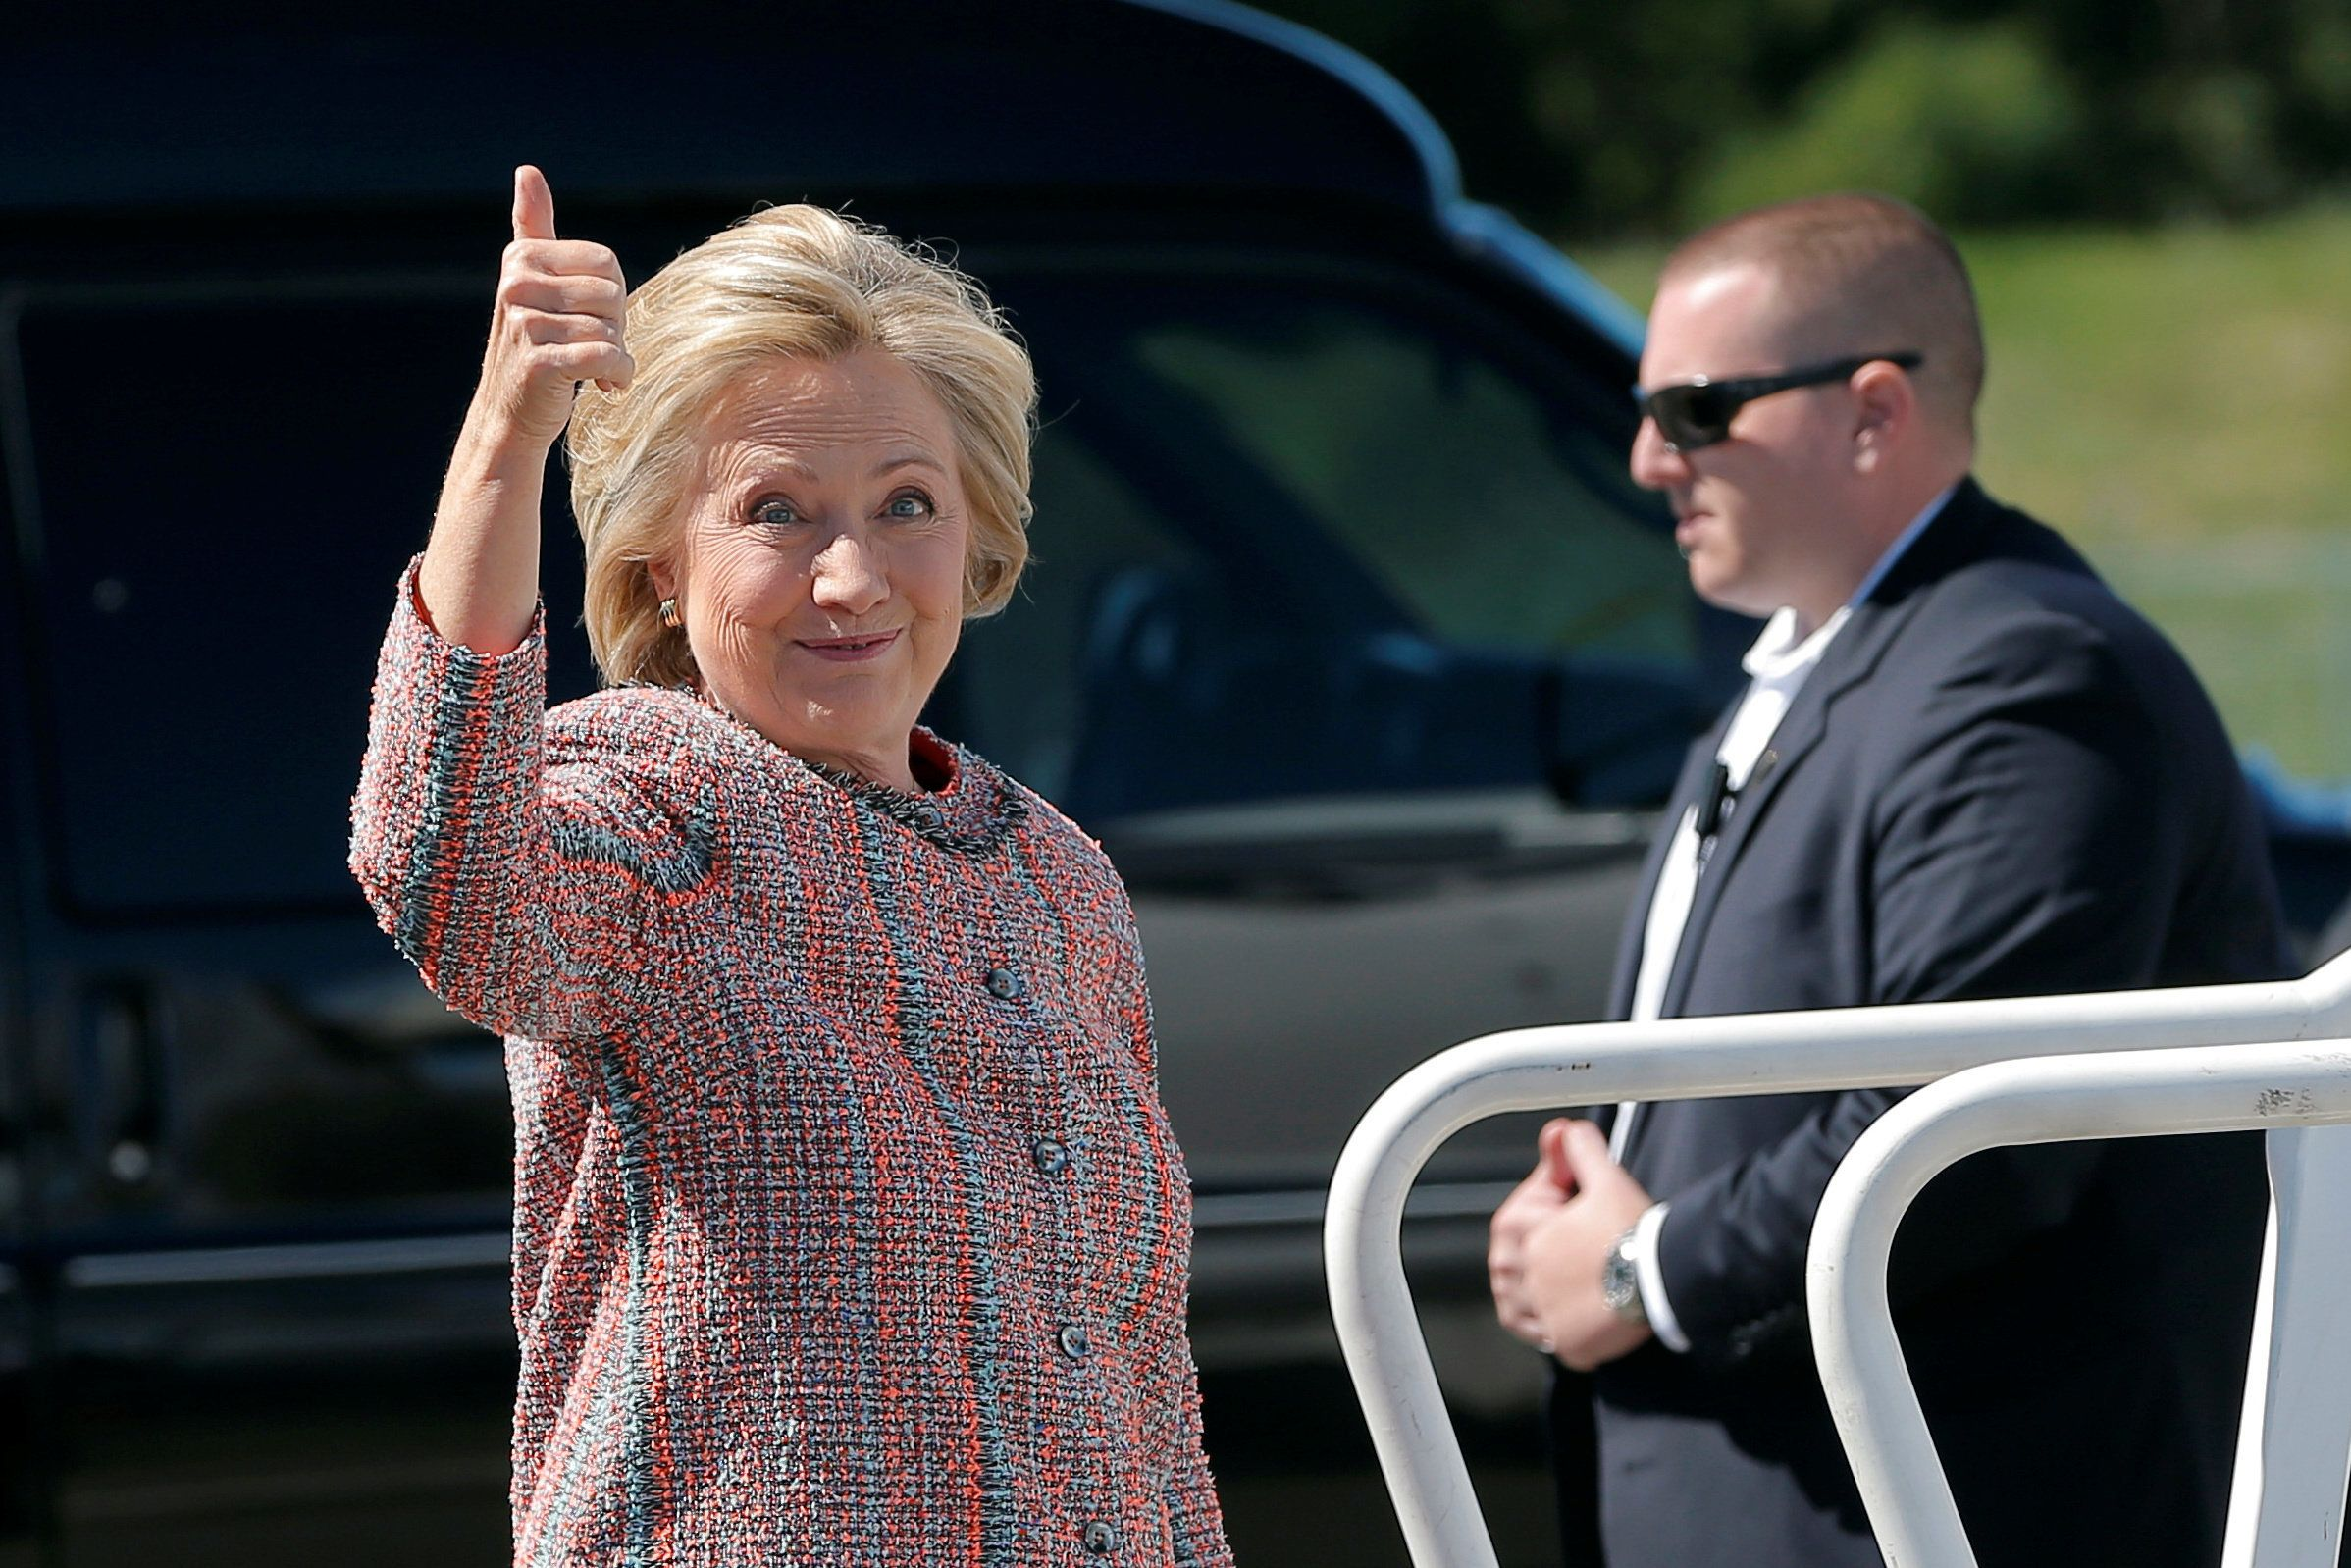 U.S. Democratic presidential candidate Hillary Clinton gives a thumbs up as she boards her campaign plane in White Plains, New York, United States September 15, 2016, to resume her campaign schedule following a bout with pneumonia.  REUTERS/Brian Snyder      TPX IMAGES OF THE DAY